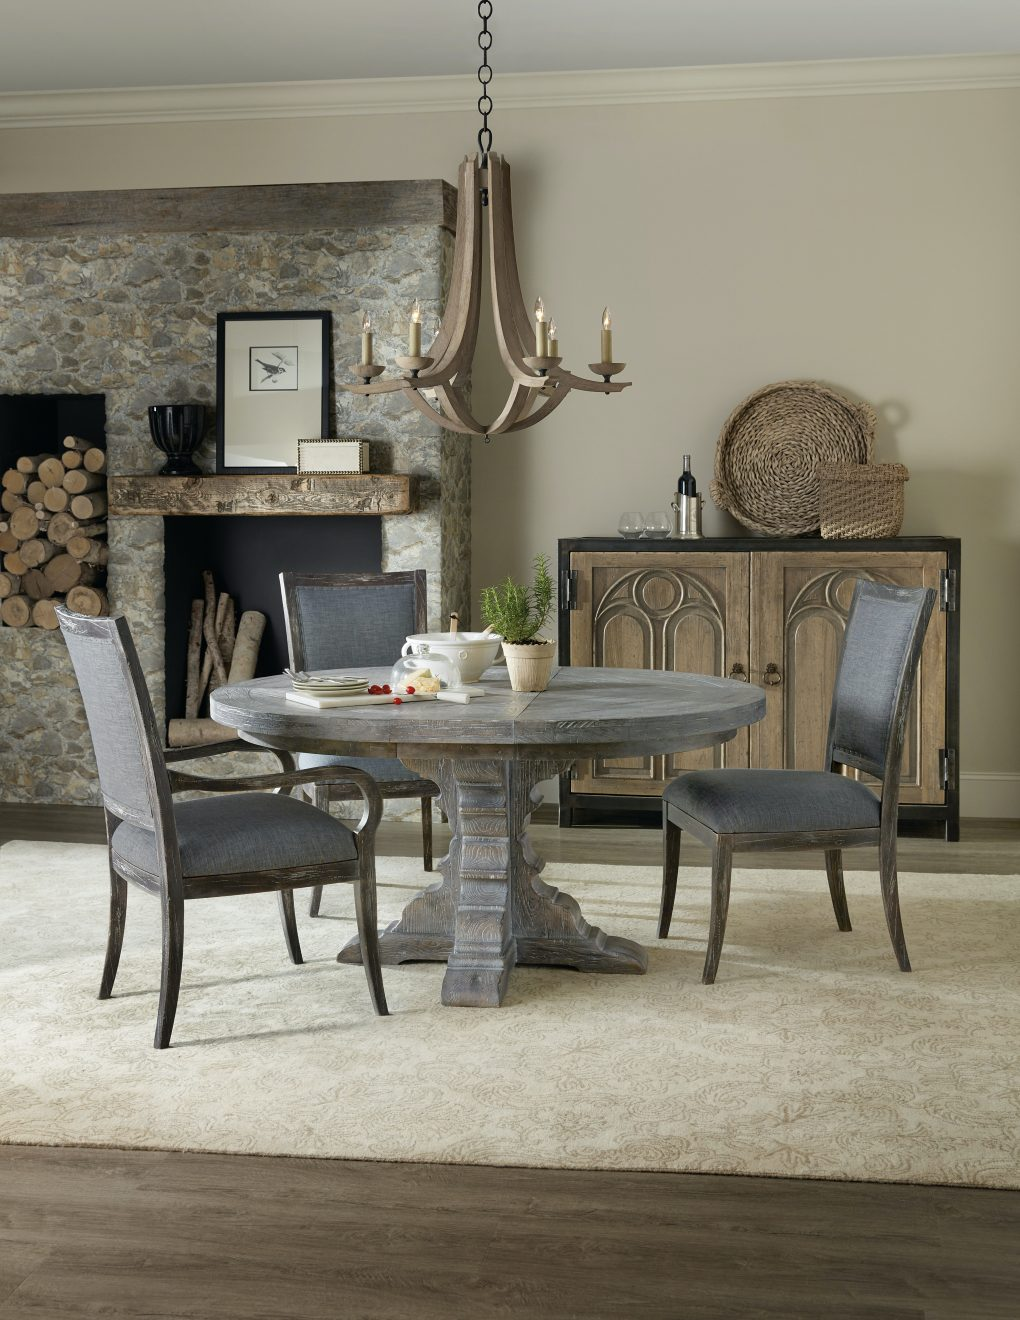 Hooker Beaumont Round Dining Table with 48in Wood Top w/2-12in Leaves | Shale